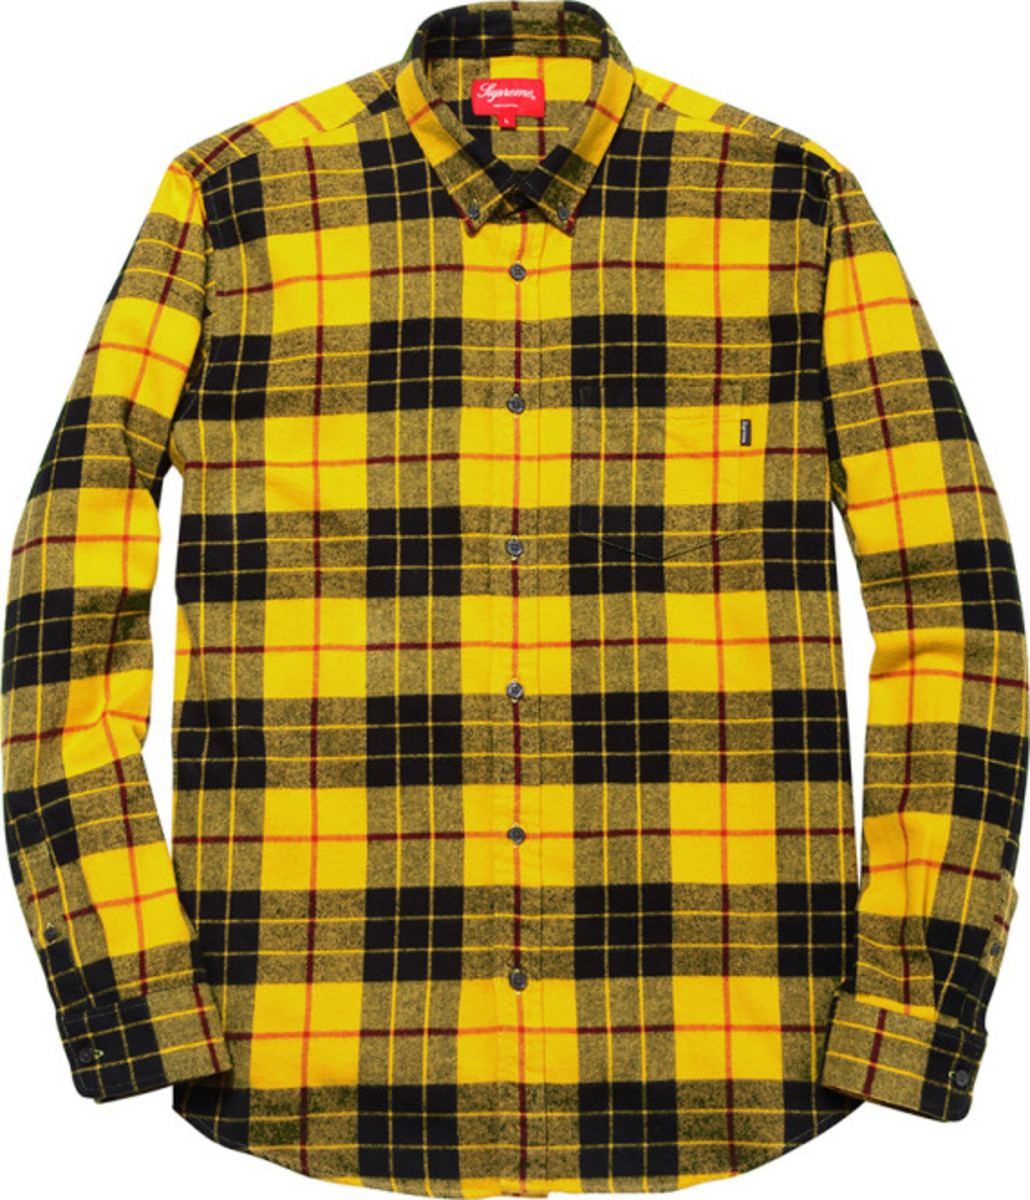 supreme-fall-winter-2013-apparel-collection-049